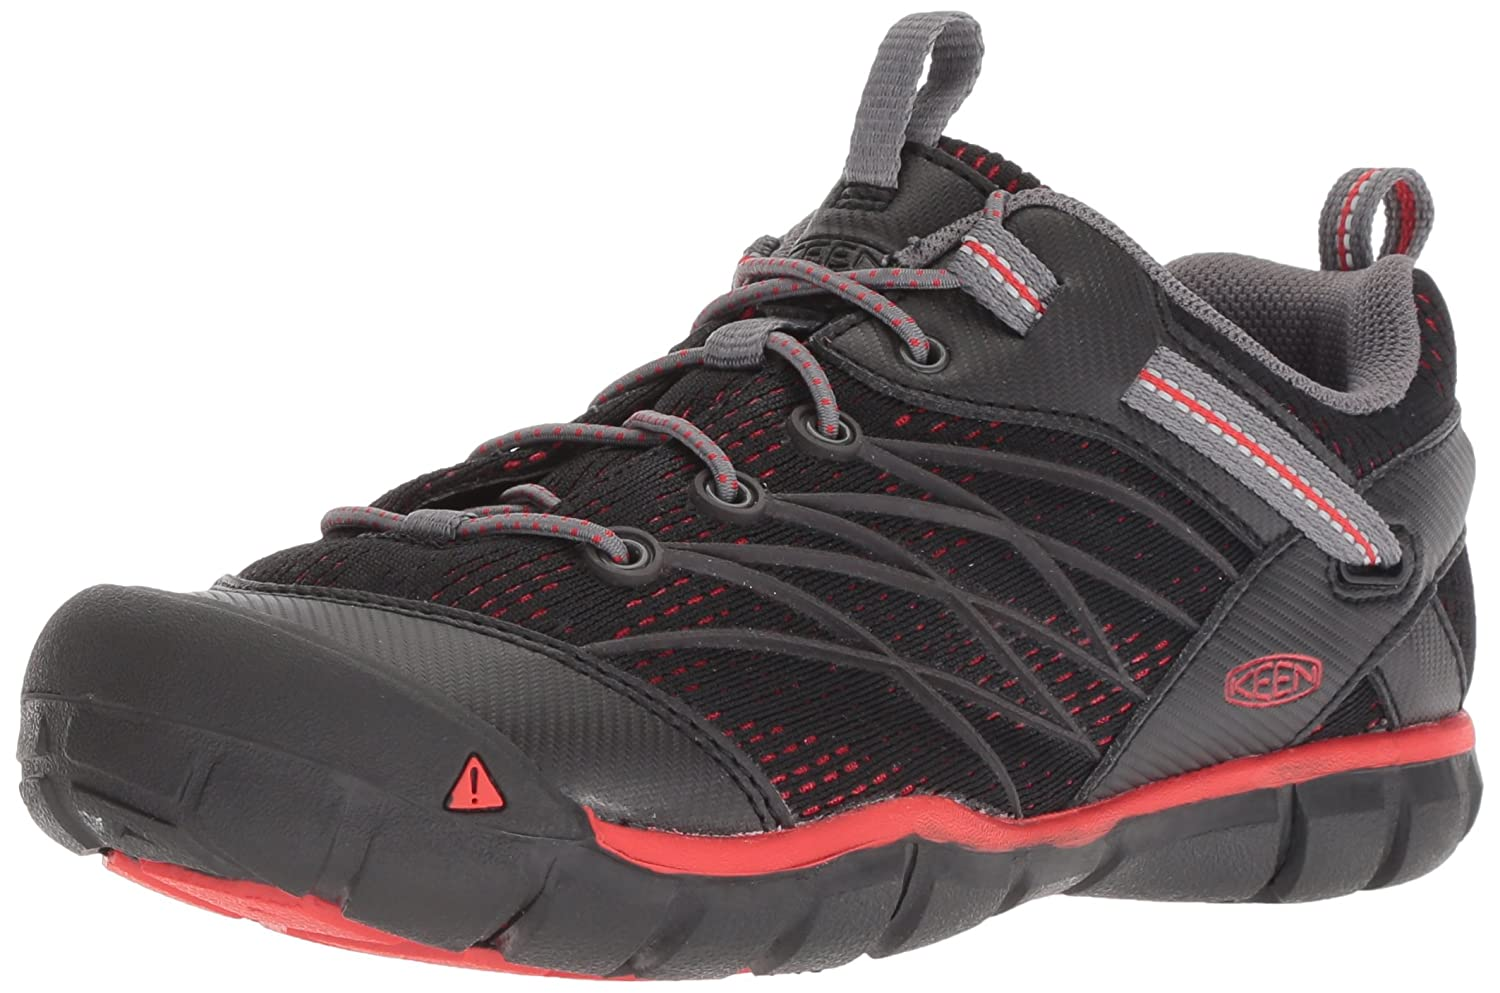 KEEN Chandler CNX Shoe B077BF7WVL 4 M US|Raven/Fiery Red